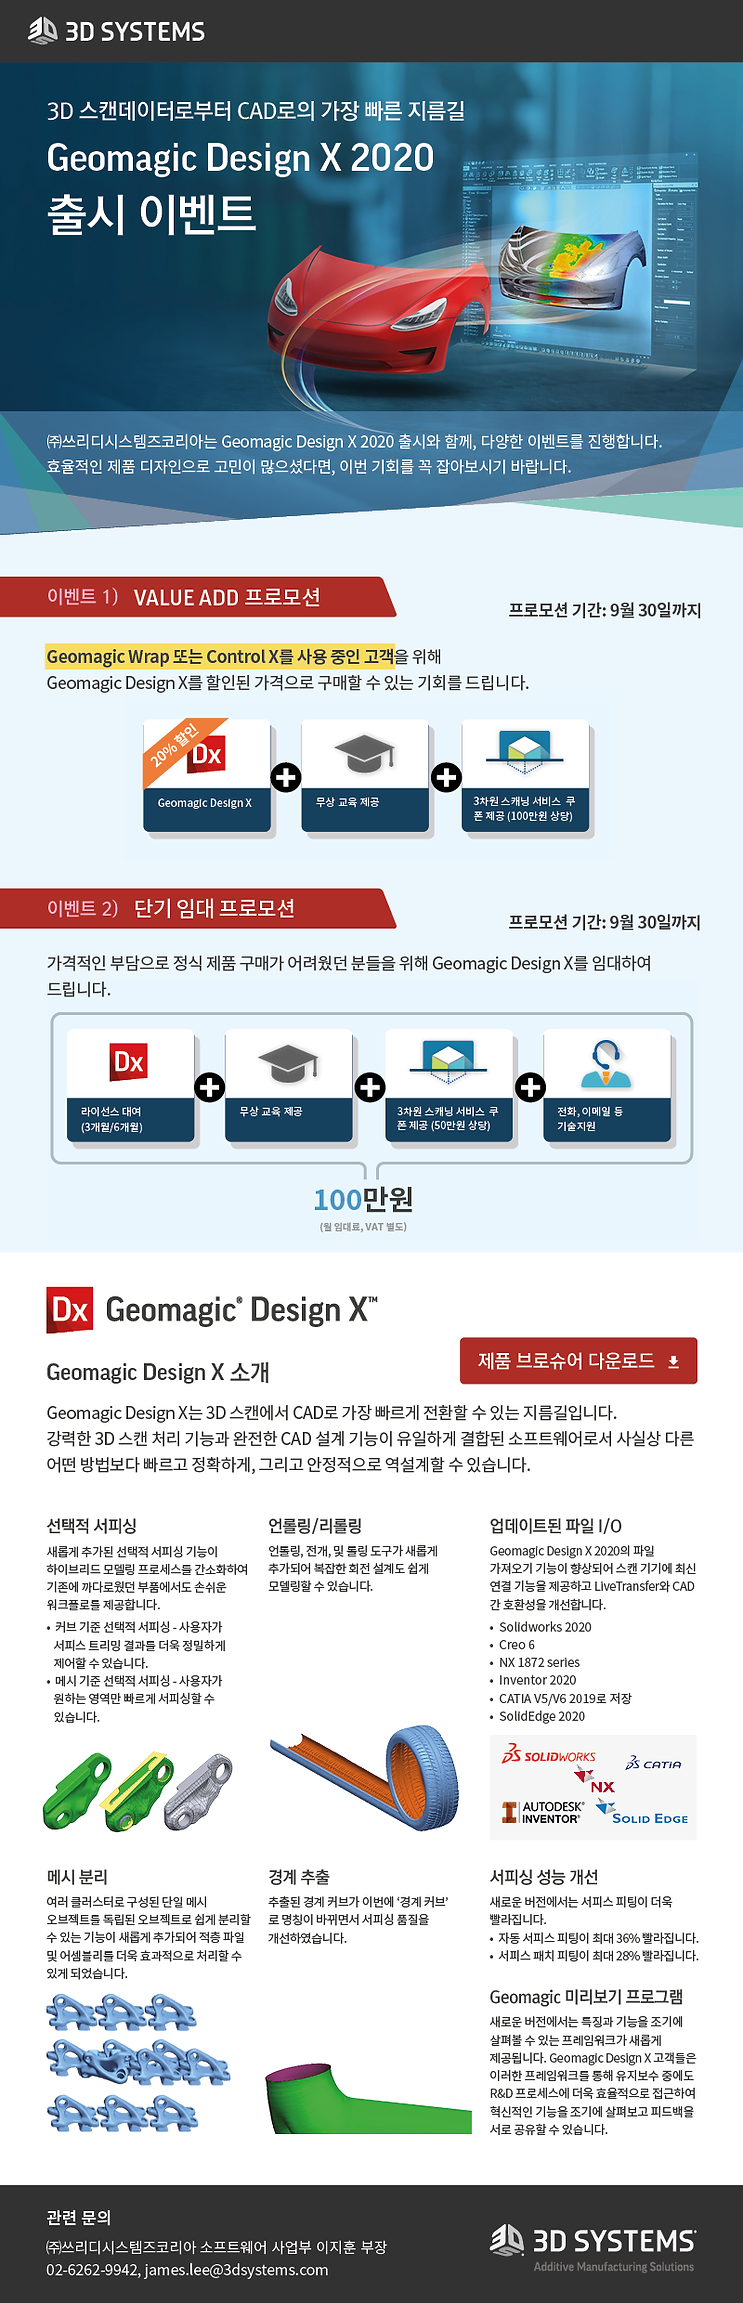 design-x-2020-release-promotion.png